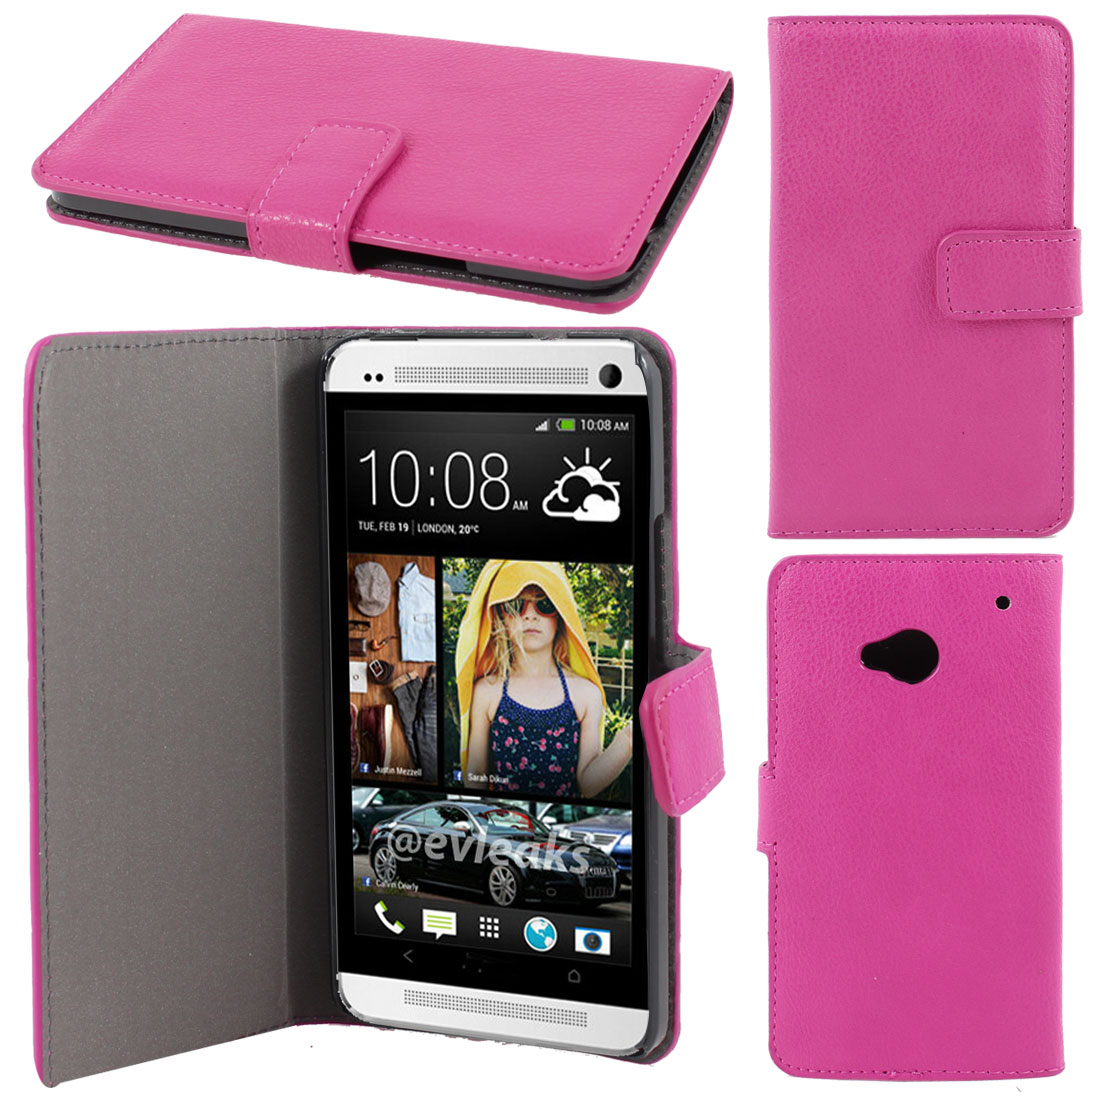 Fuchsia Faux Leather Litchi Print Magnetic Flip Case Cover Pouch for HTC one M7